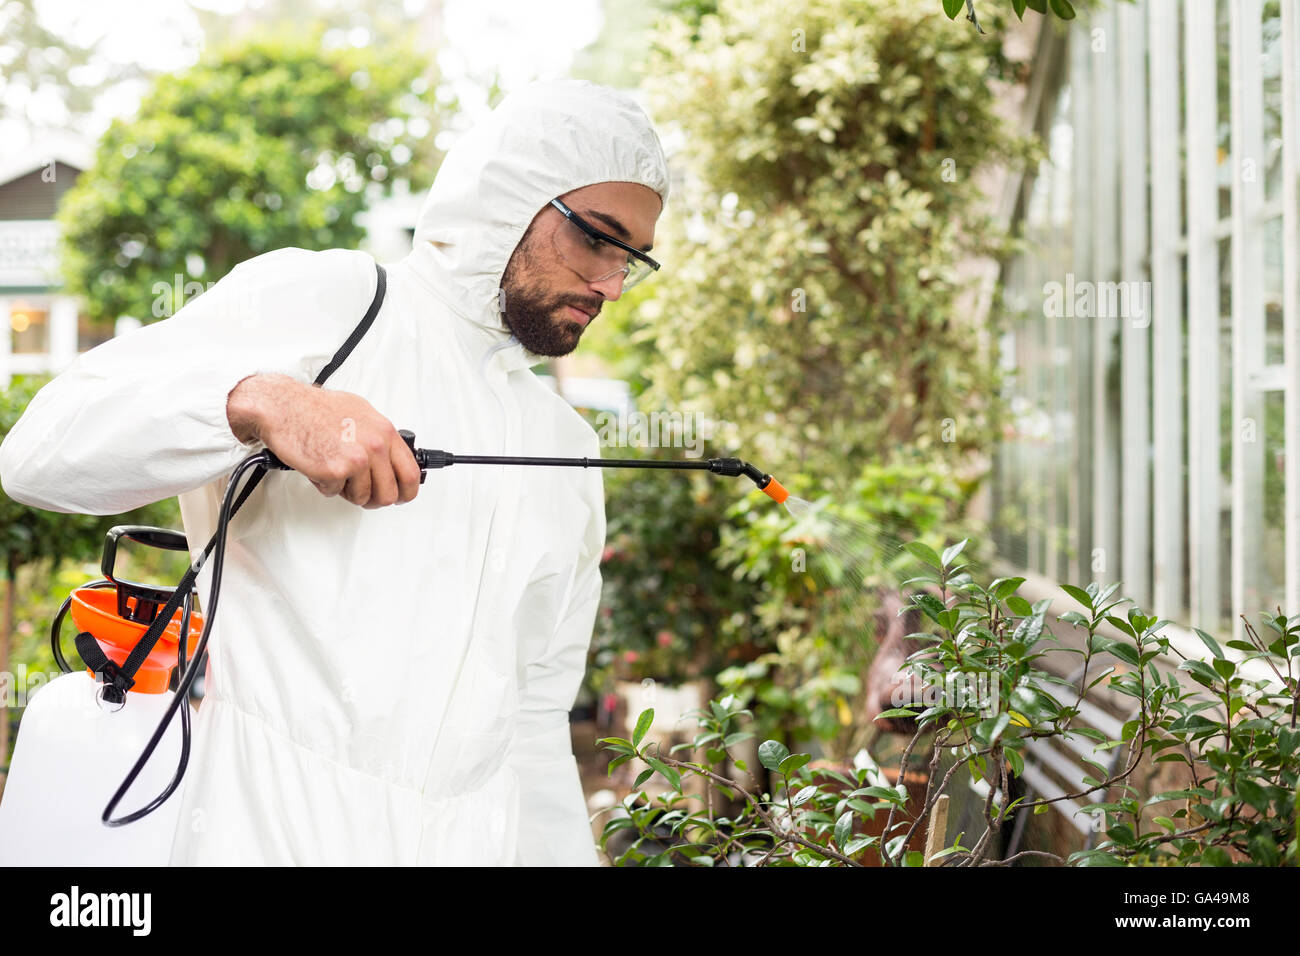 Male scientist spraying pesticides on plants Stock Photo